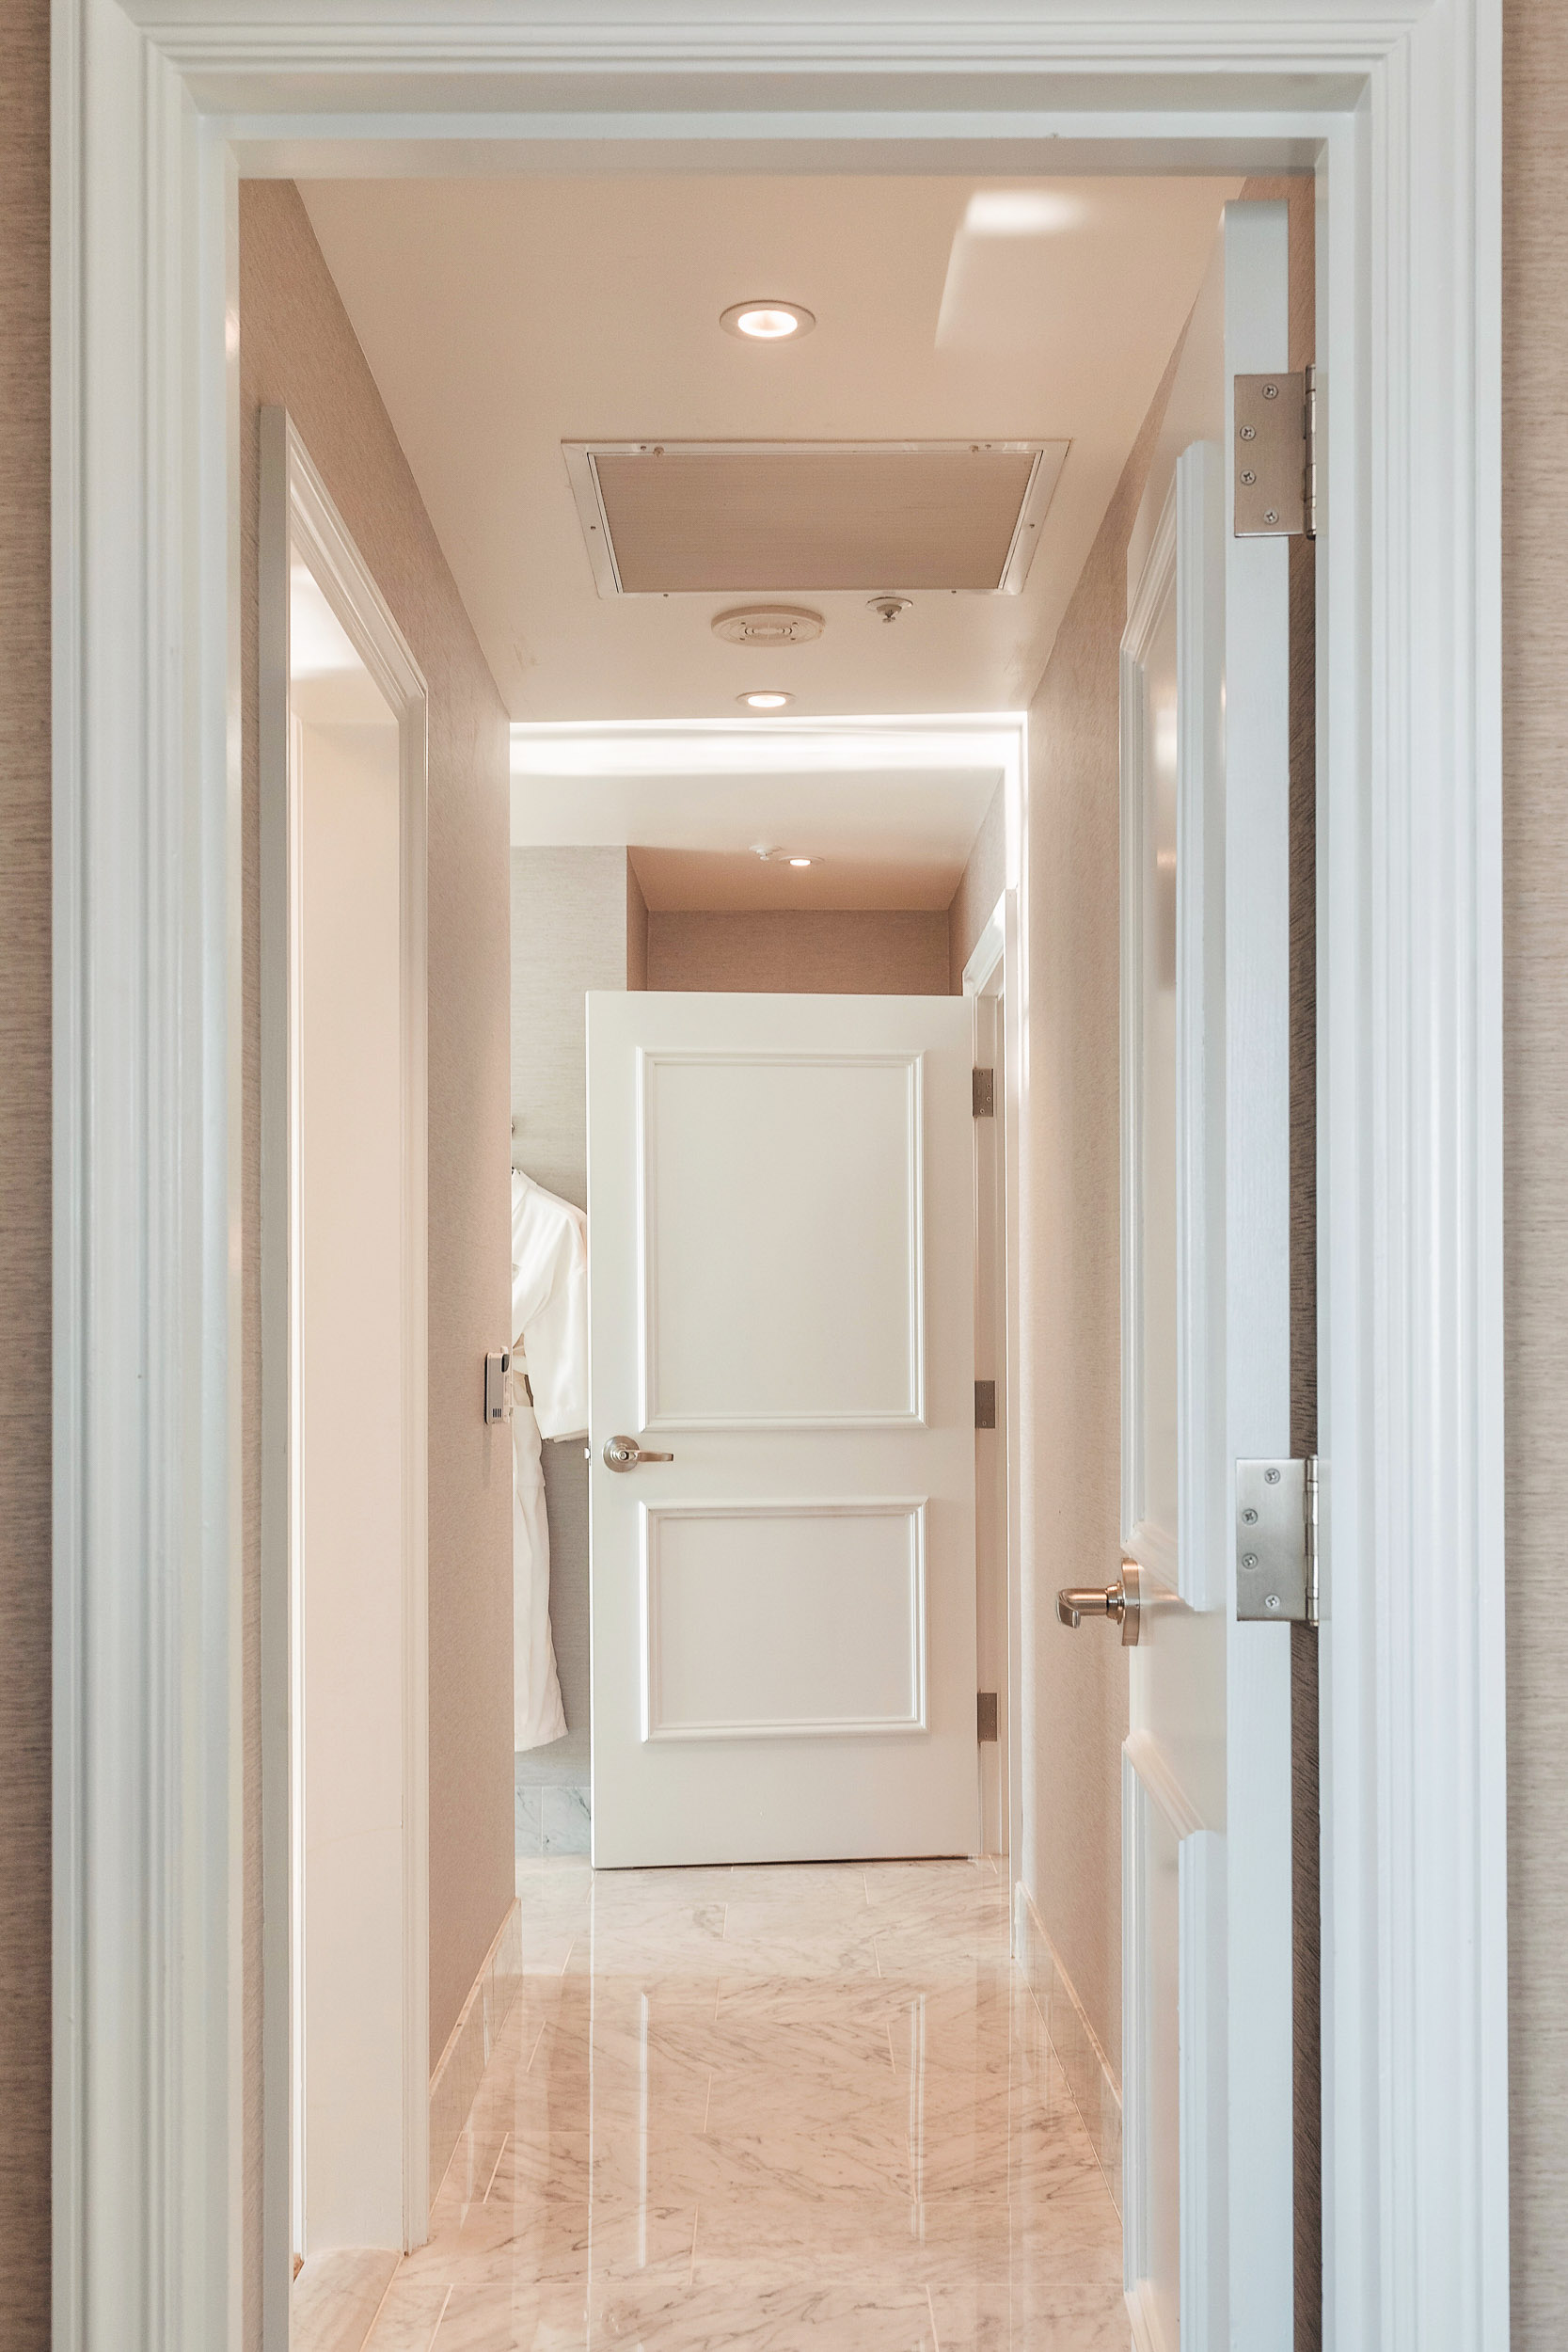 The entrance to the spa bathroom in the Presidential Suite